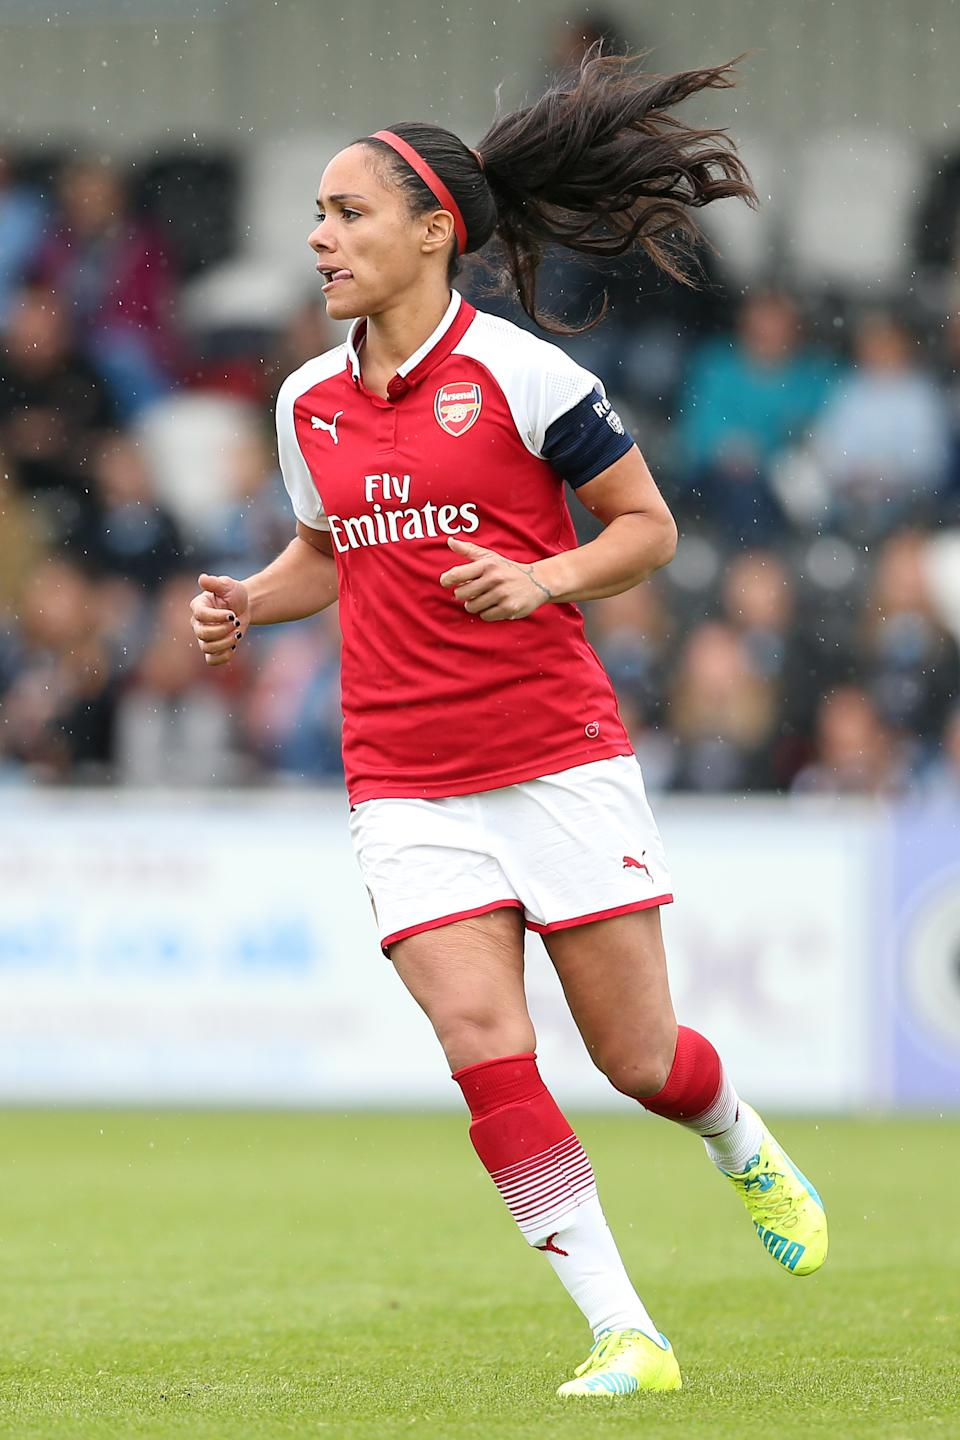 BOREHAMWOOD, ENGLAND - MAY 12: Alex Scott of Arsenal during the Womens Super League match between Arsenal Ladies and Manchester City Women at Meadow Park on May 12, 2018 in Borehamwood, England. (Photo by Charlotte Wilson/Offside/Getty Images)